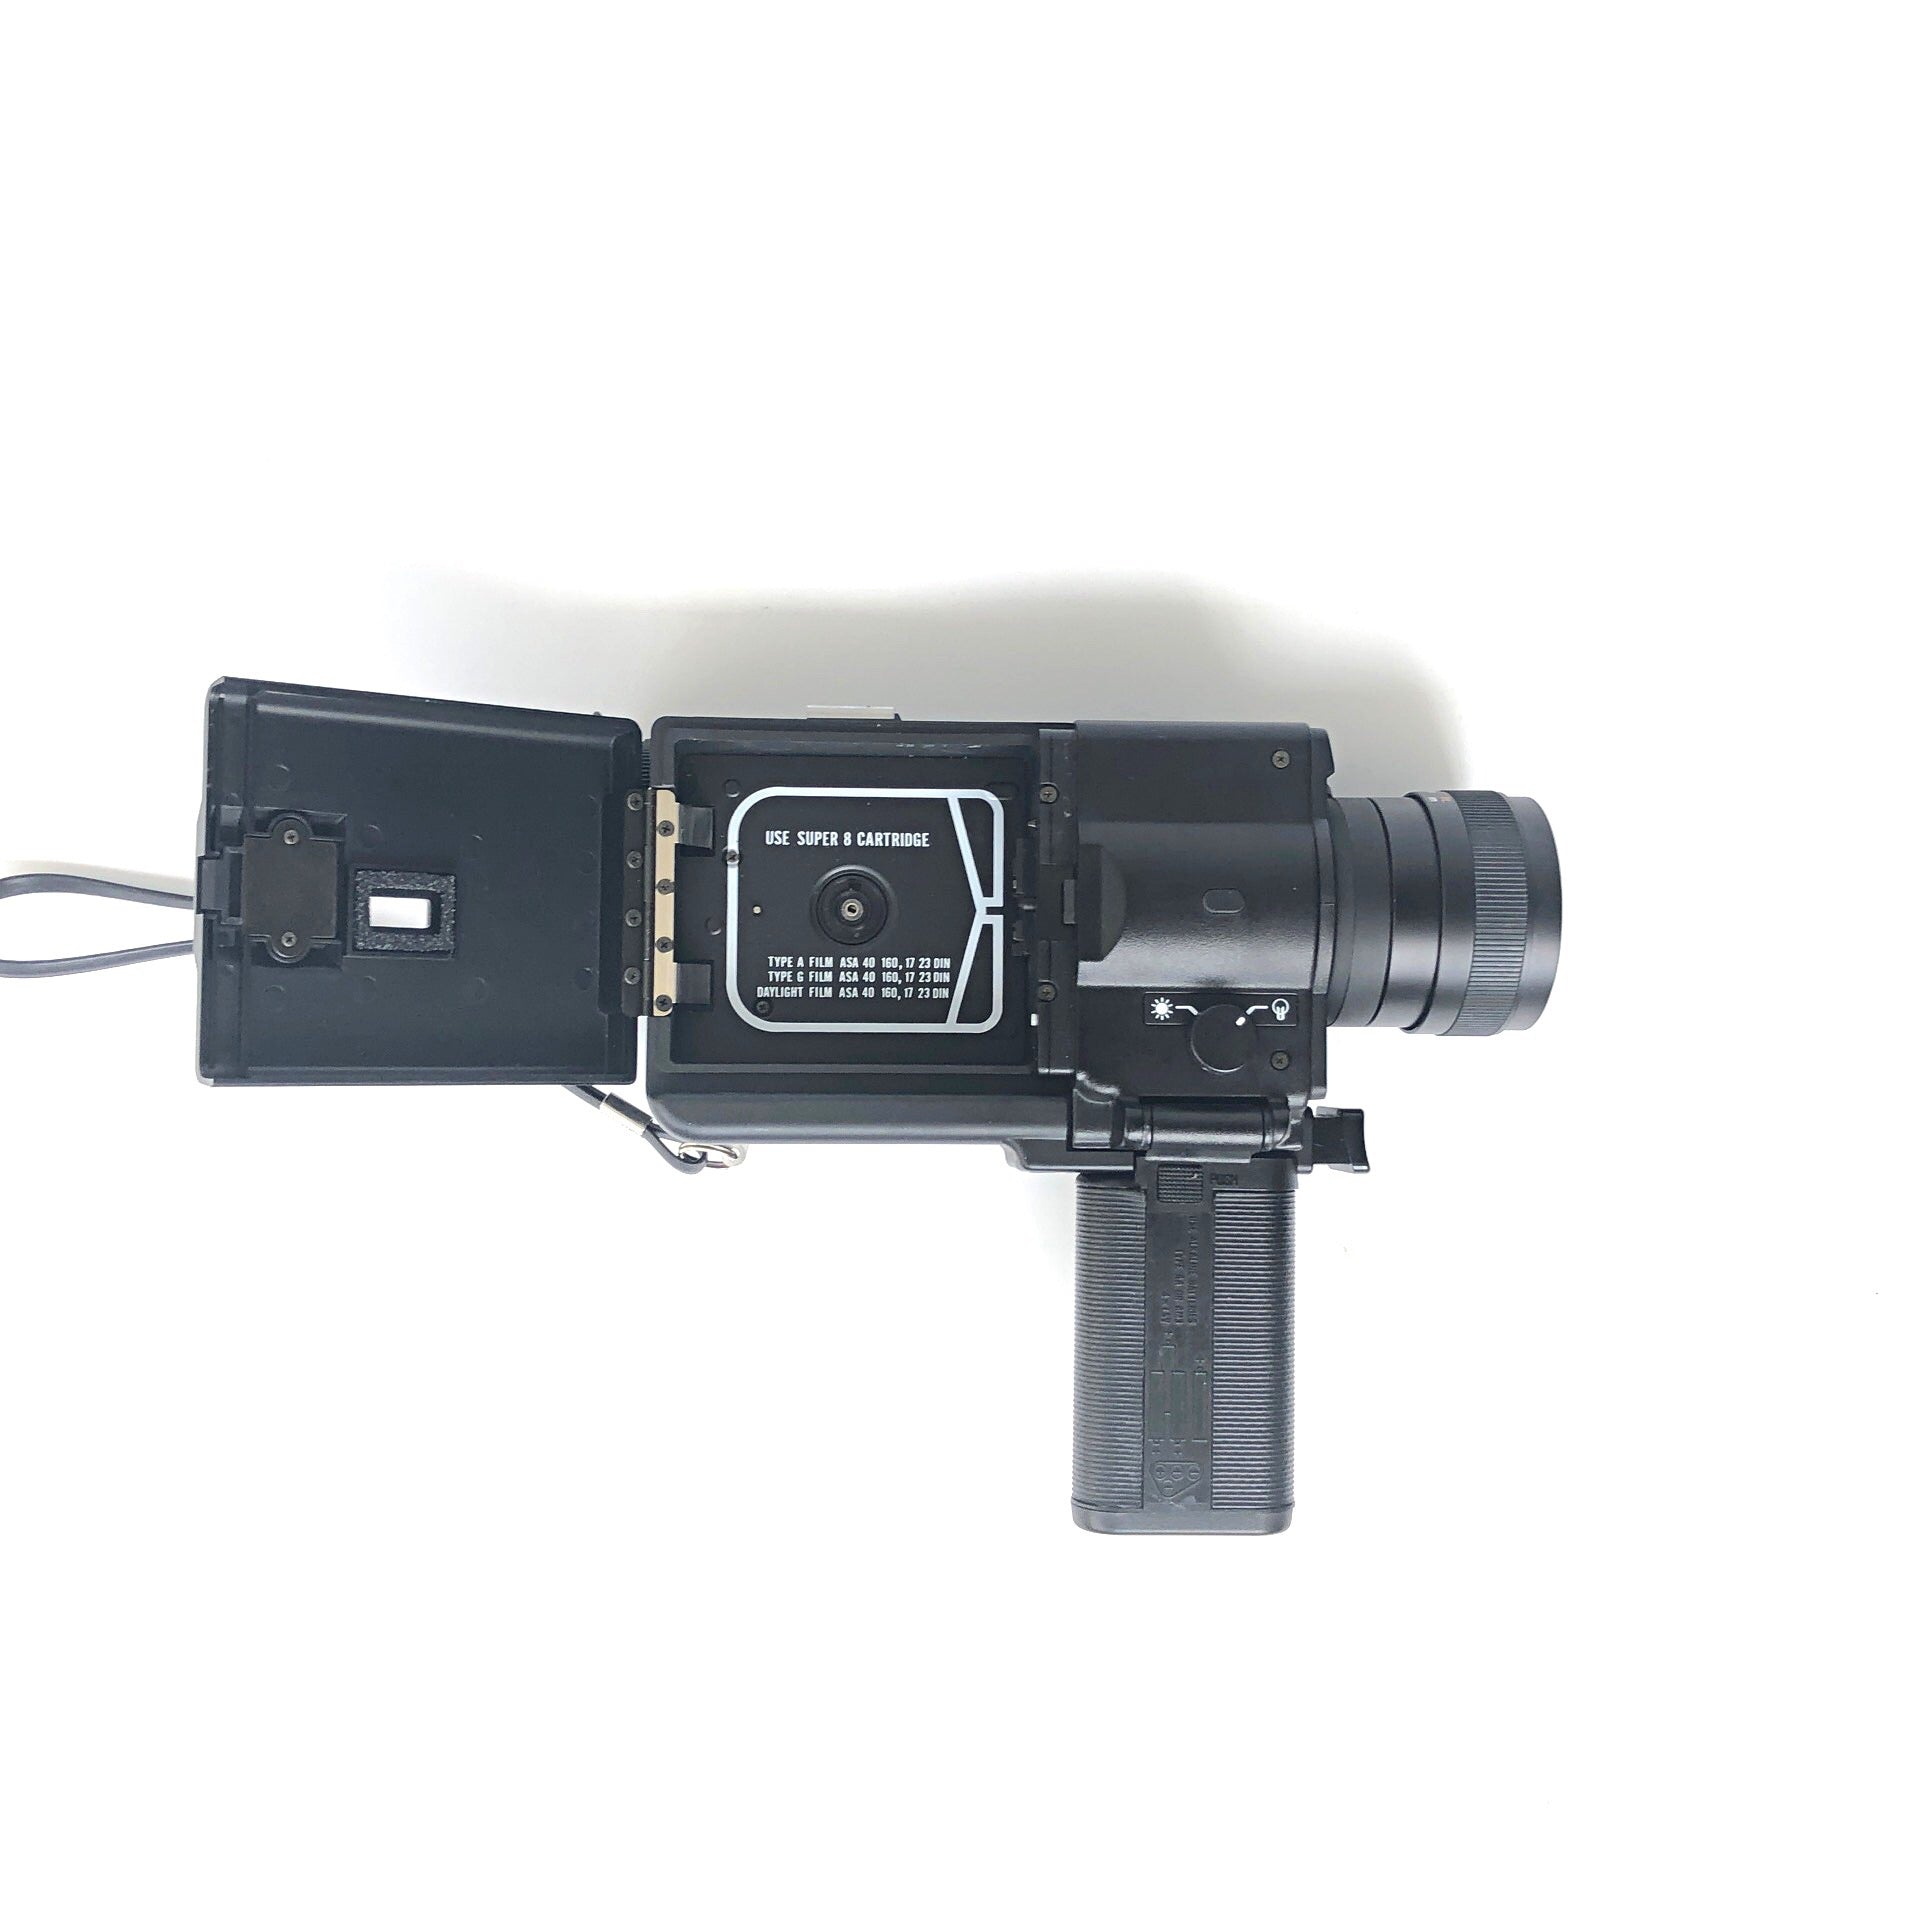 Sankyo EM-40XL super8 camera – East Camera